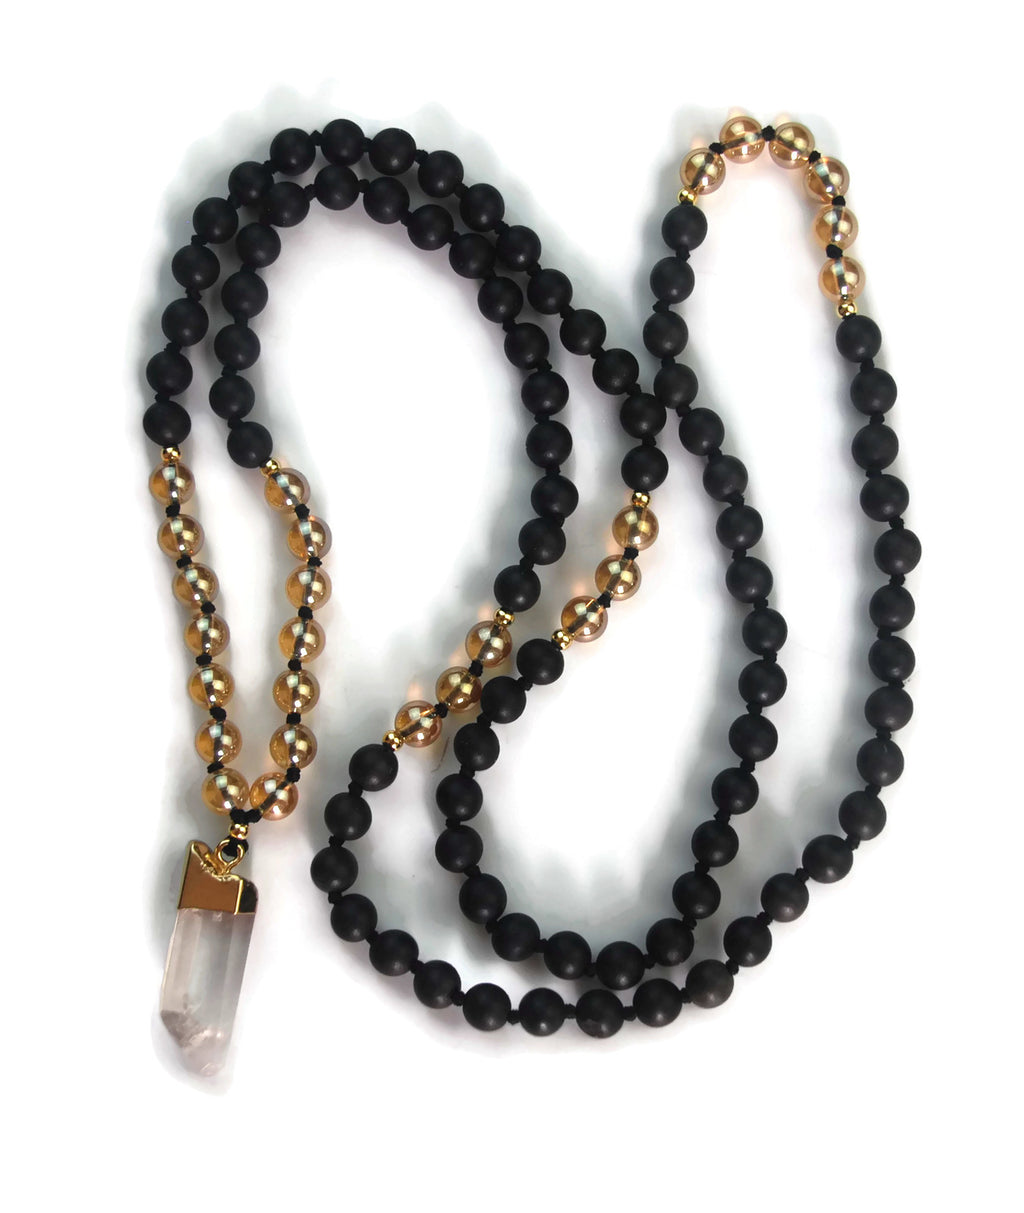 Enlightenment Line 8mm Gold Crystal and Agarwood. gold dipped Crystal Pendant 24k Gold Knotted 108 Meditation Mala Necklace Crown Chakra Draft